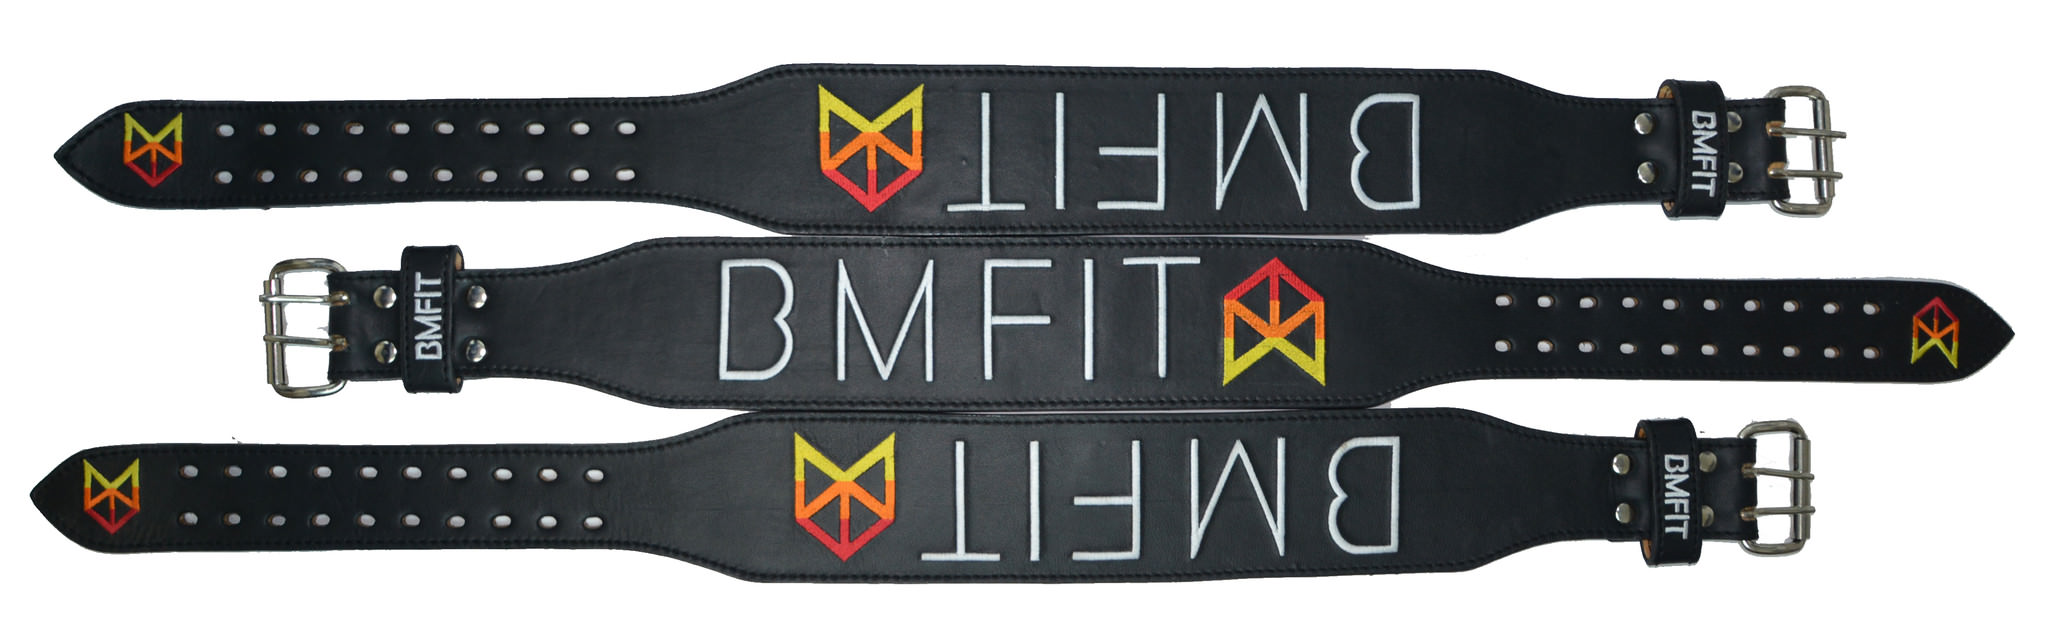 BMFIT 100% Genuine Leather Weightlifting Belts - Black